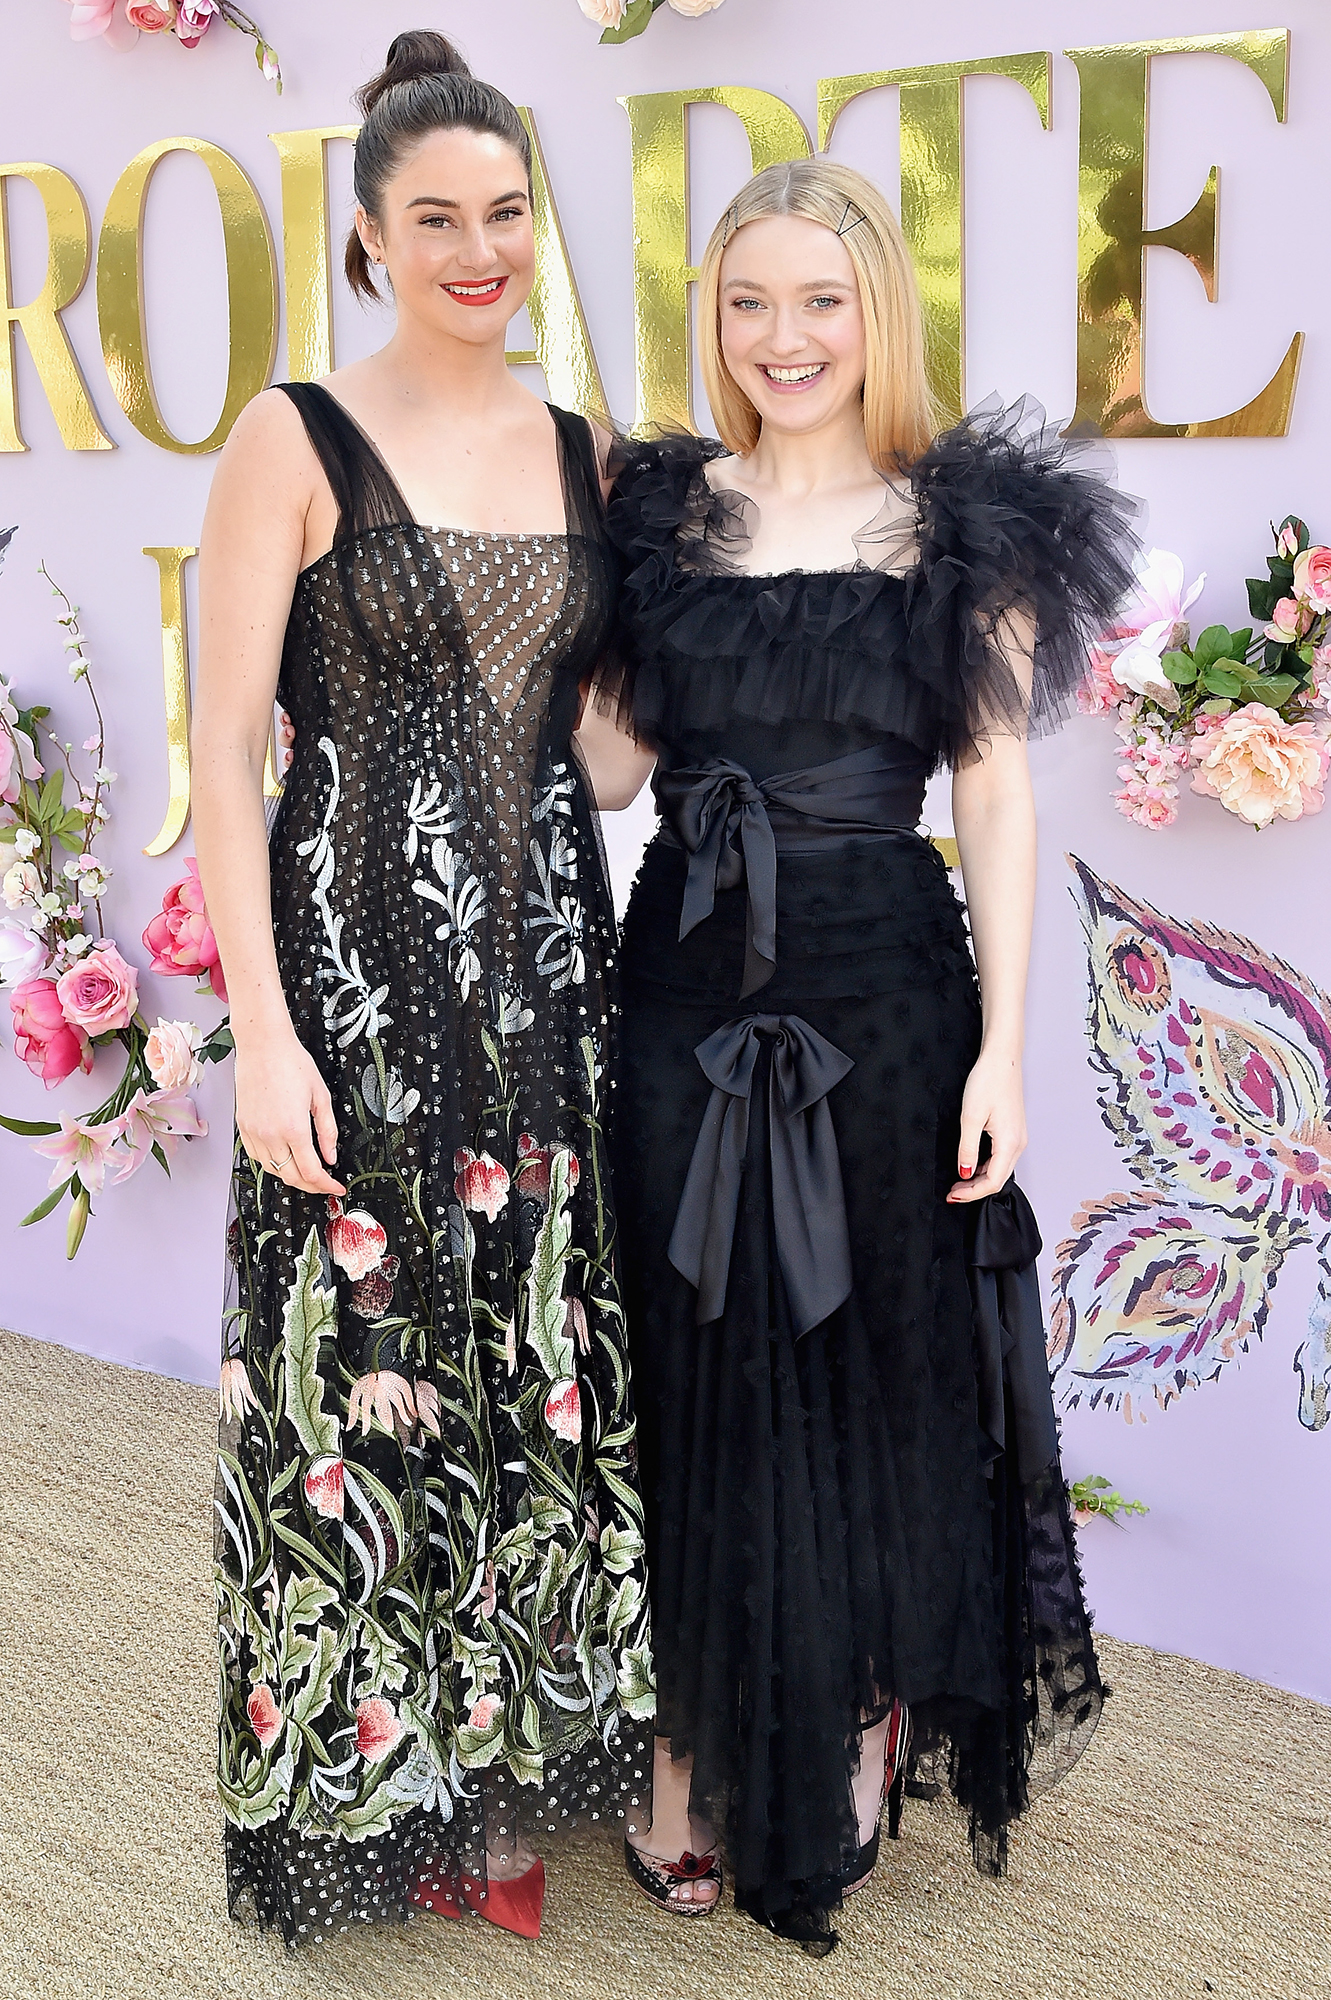 Hollywood's Freshest Faces Were Front Row at the Rodarte Show - Shailene Woodley and Lucy Boynton attend JNSQ Rose Cru debuts alongside Rodarte FW/19 Runway Show at Huntington Library on February 5, 2019 in Pasadena, California.